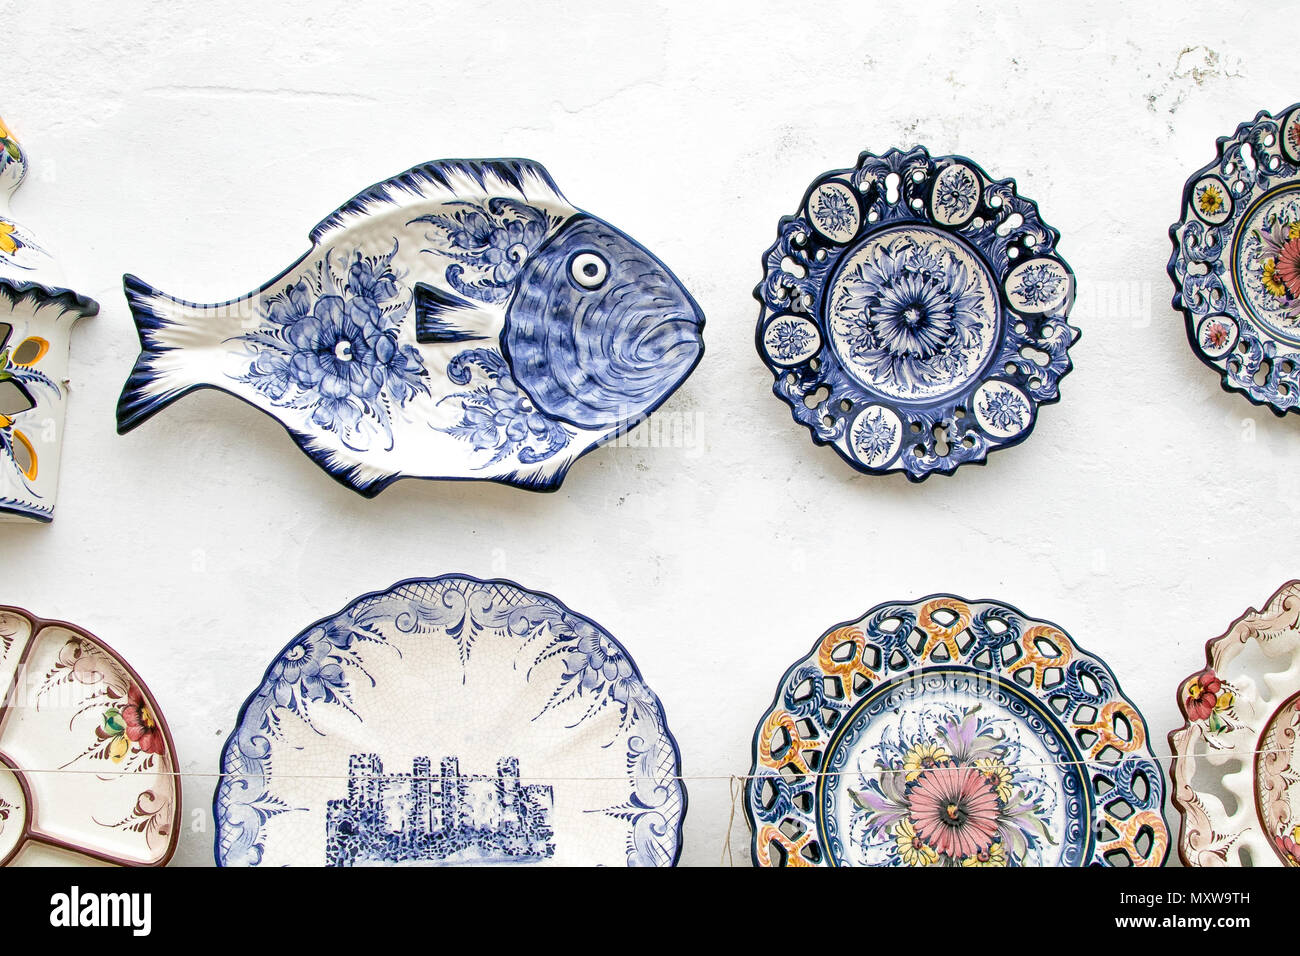 Touristy souvenirs for sale at the streets of Obidos, Portugal. - Stock Image